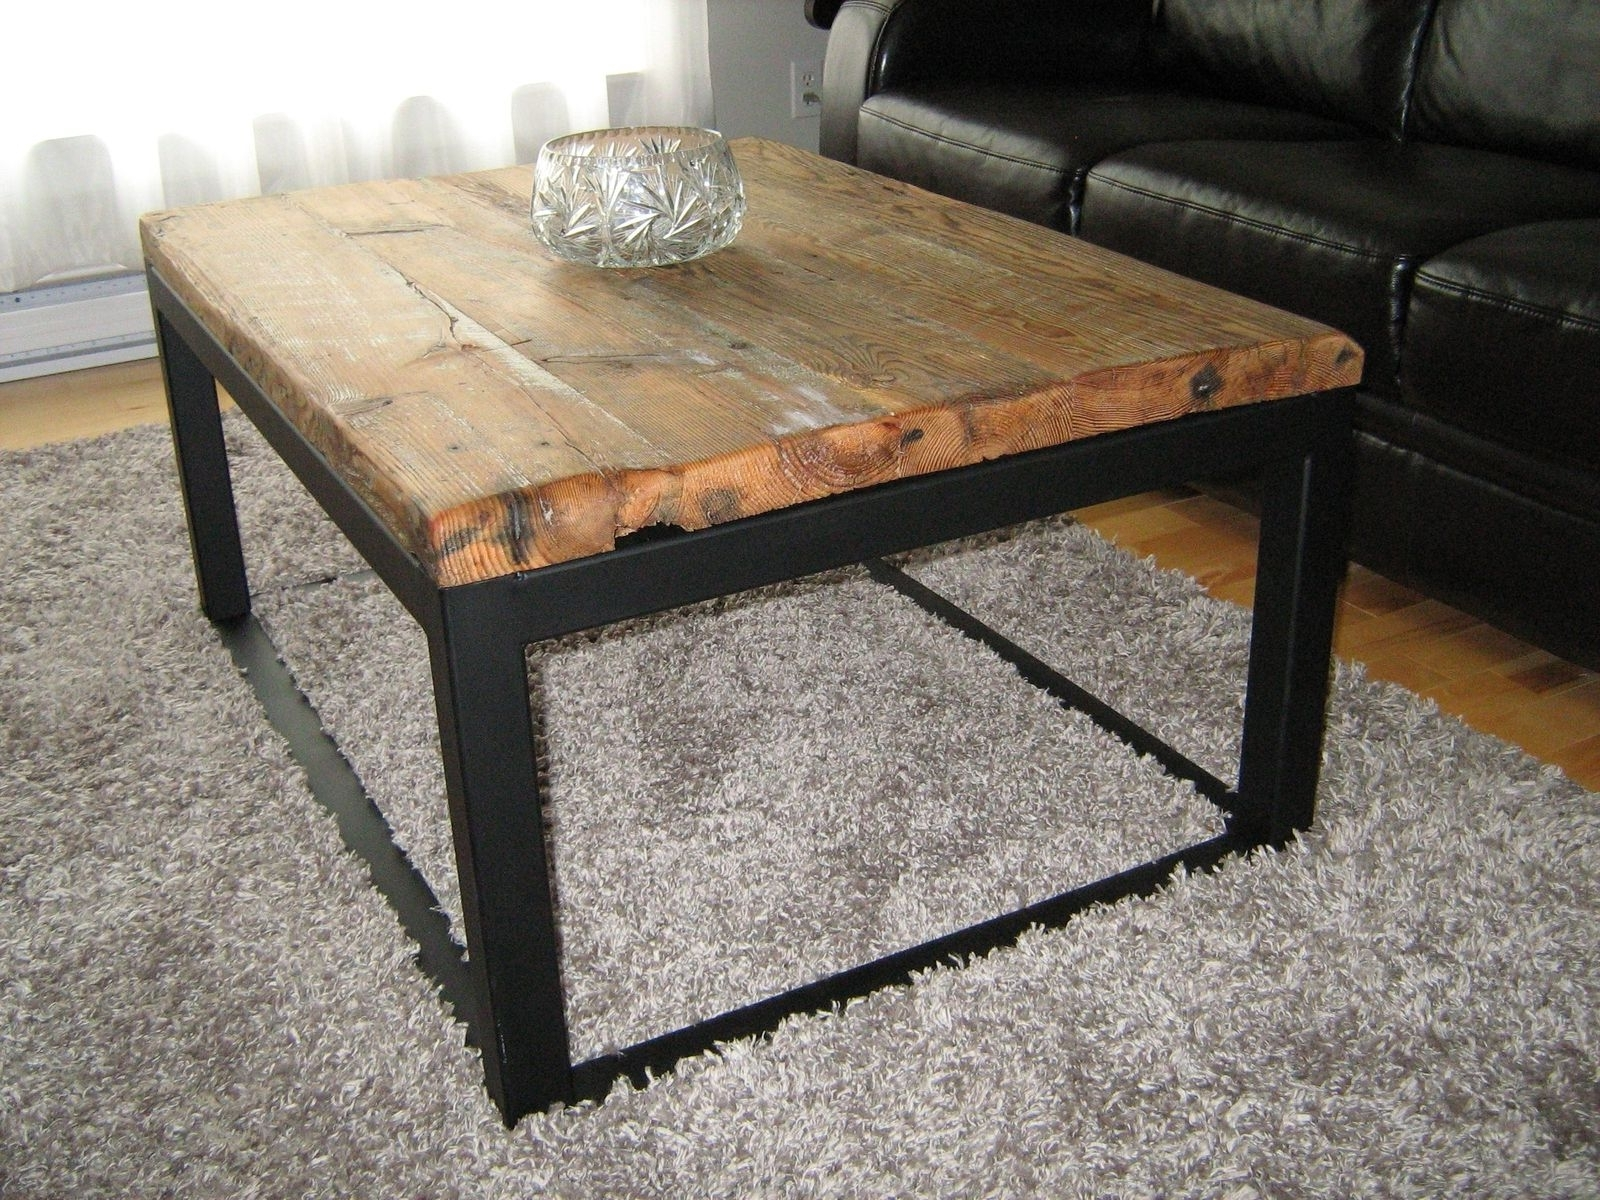 Wood And Metal Coffee Table Awesome – Thelightlaughed Within Preferred Iron Wood Coffee Tables With Wheels (View 17 of 20)